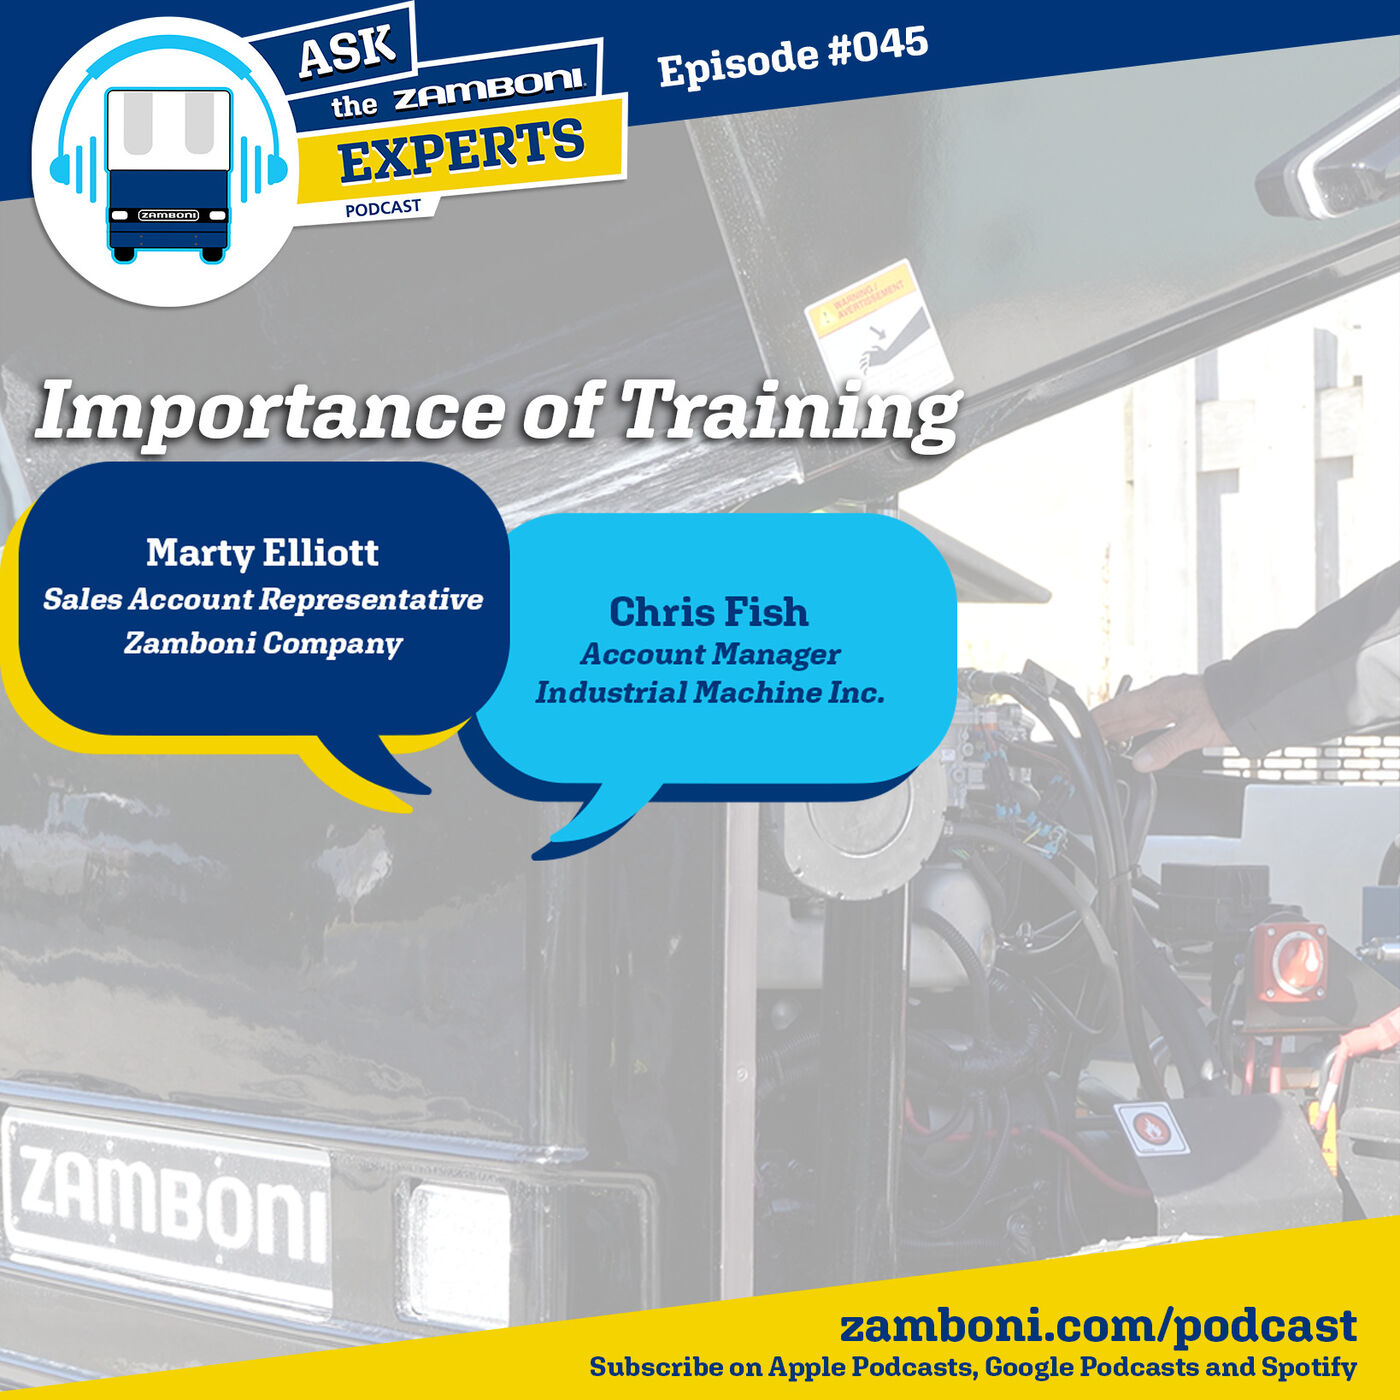 Episode #045: Importance of Training